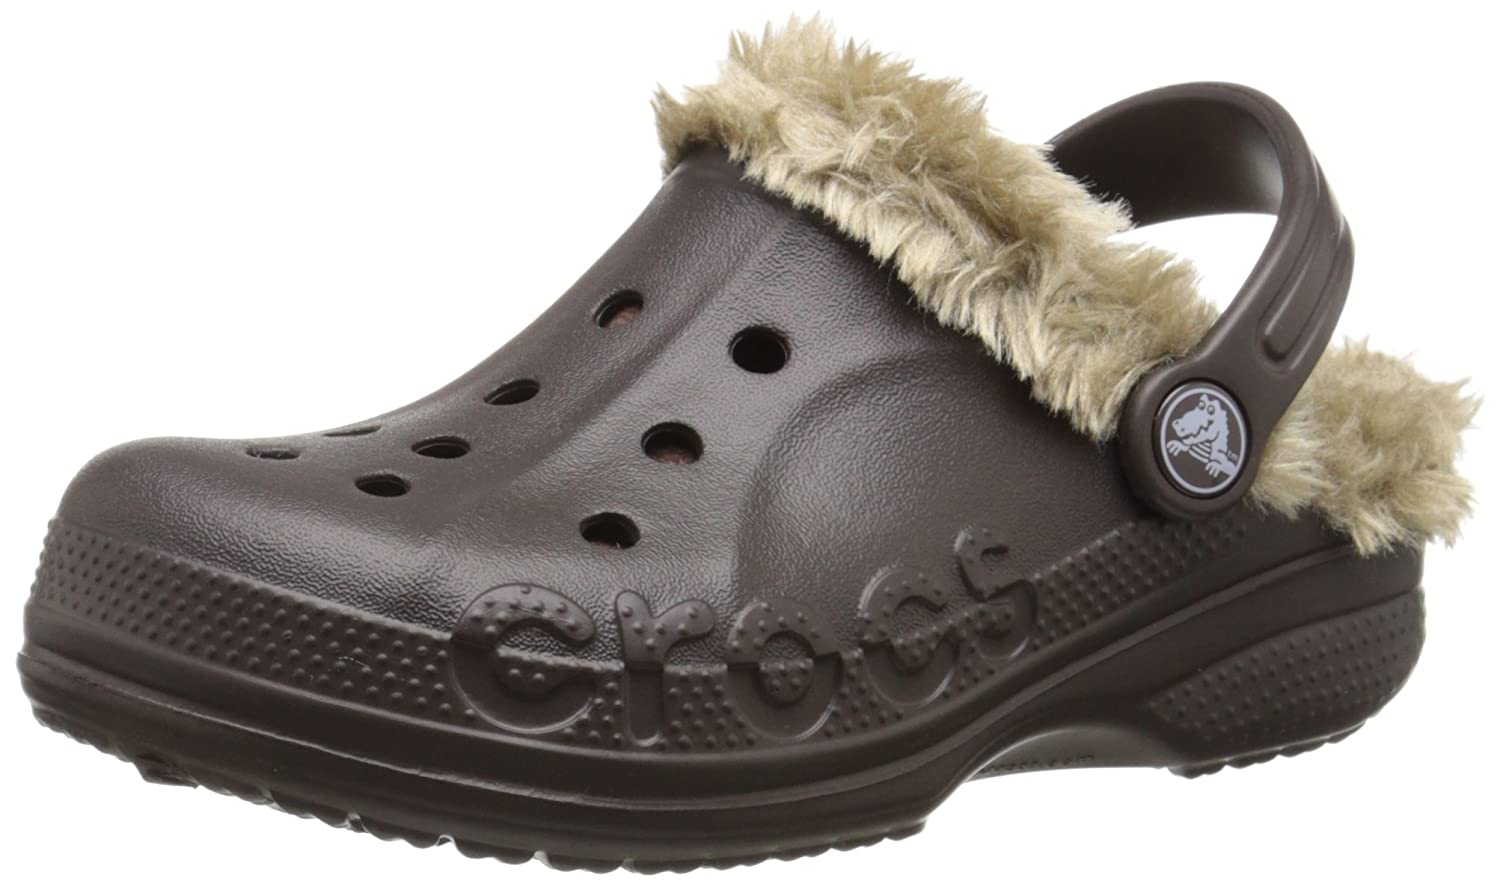 Crocs Kids' Baya Plush Lined Clog crocs 202344